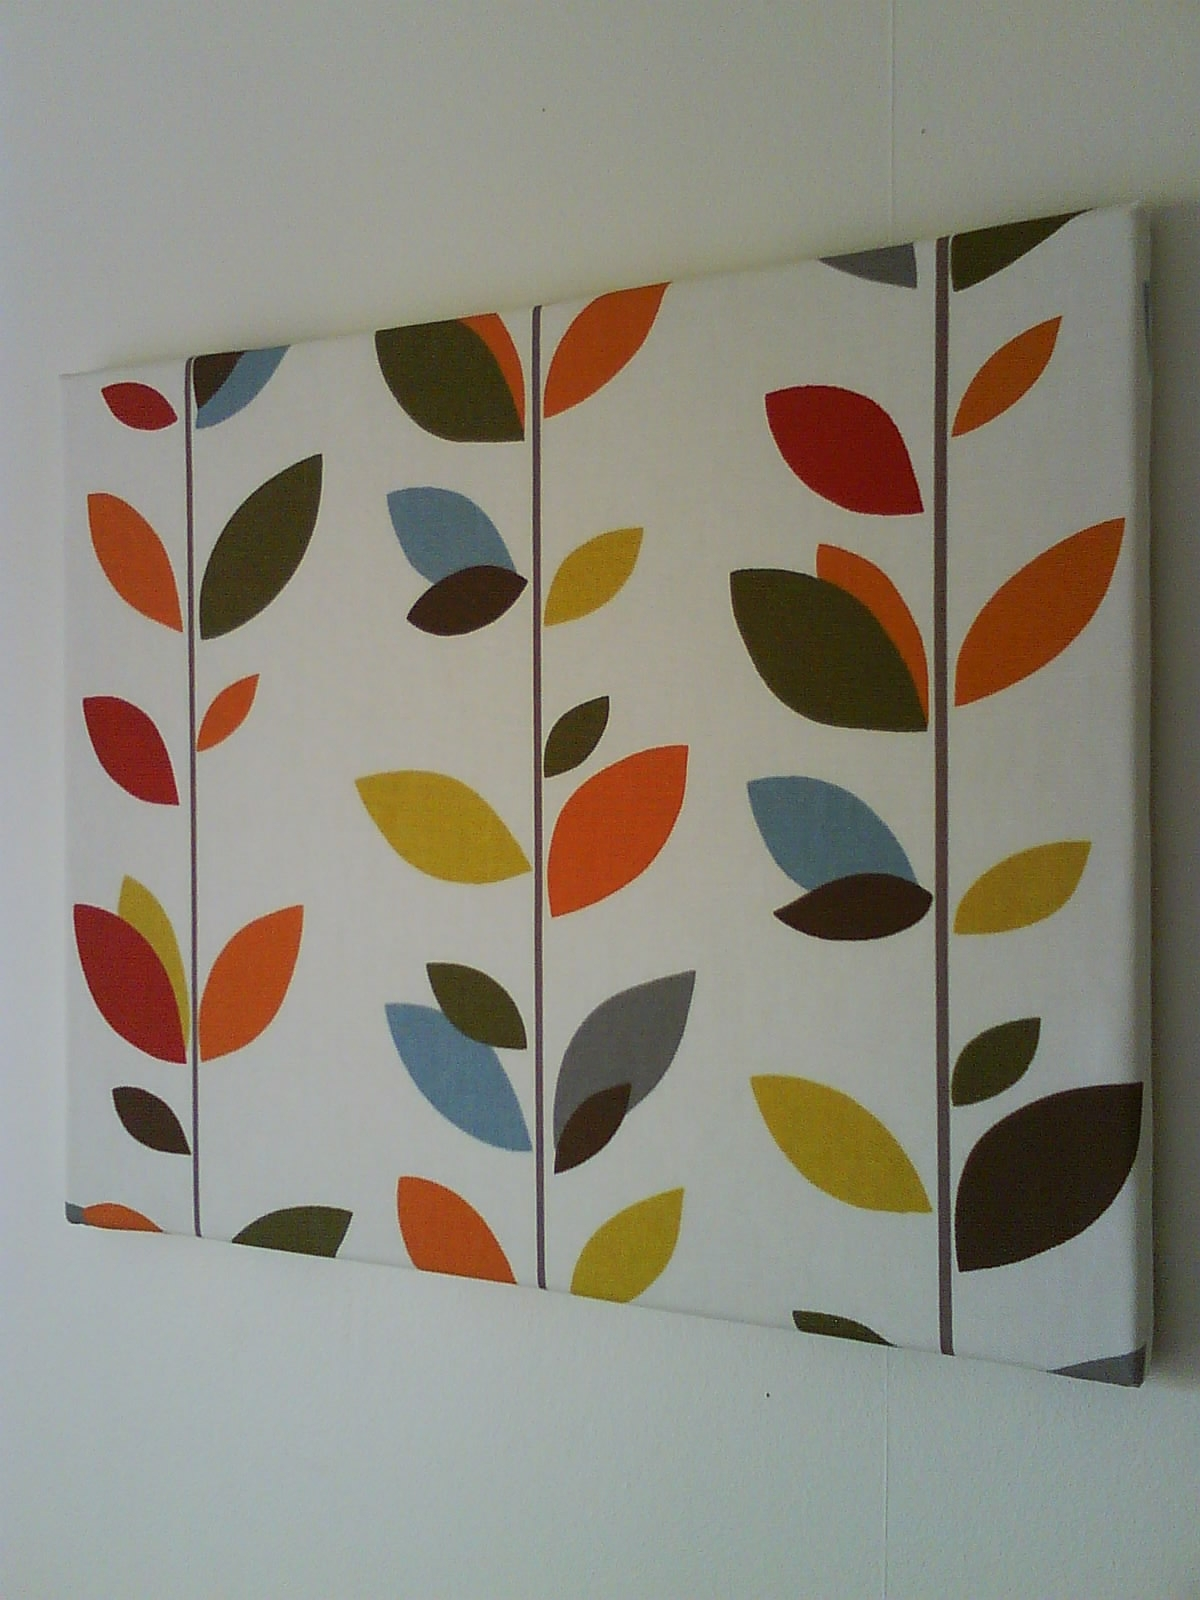 Anminternational: Colourful Multi Stem Fabric Canvas Wall Art Inside Most Up To Date Fabric For Canvas Wall Art (View 11 of 15)